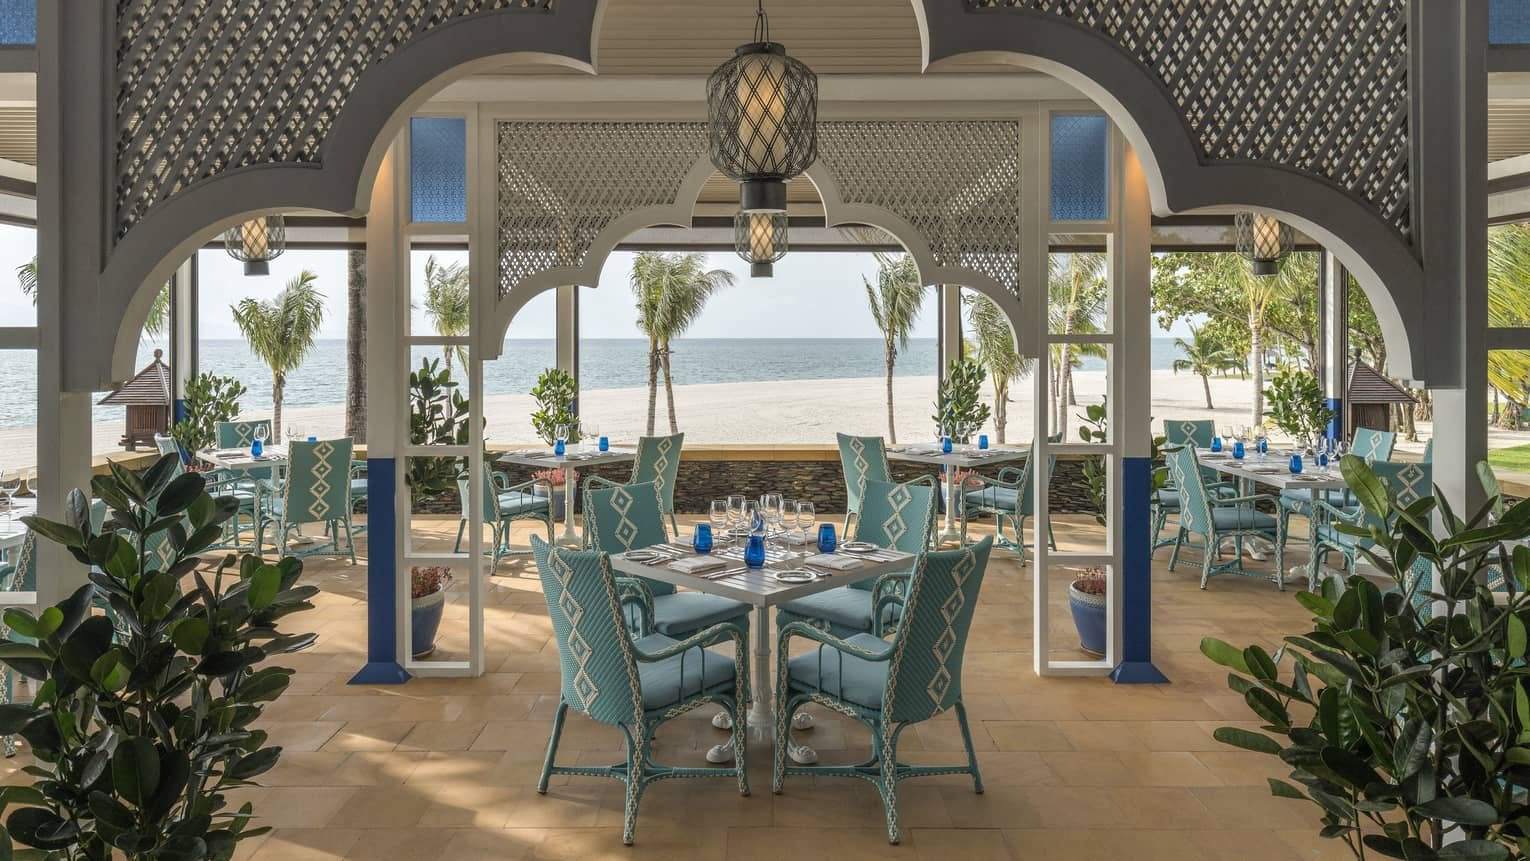 Upper Serai Restaurant dining area overlooking the beach with palm trees